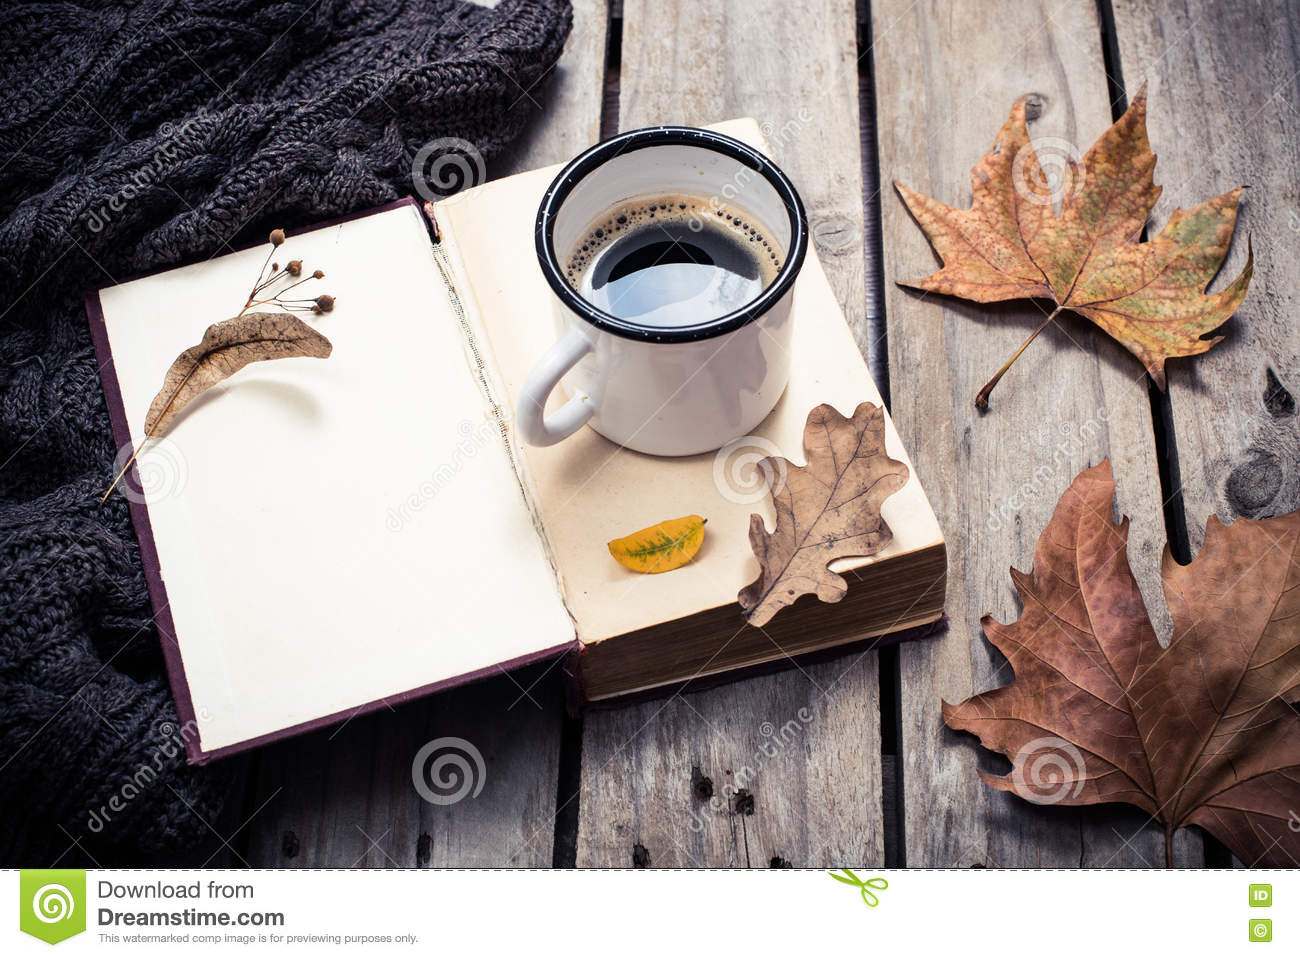 Seasonal Fall Coffee Desktop Wallpaper Vintage Book Knitted Sweater With Autumn Leaves And